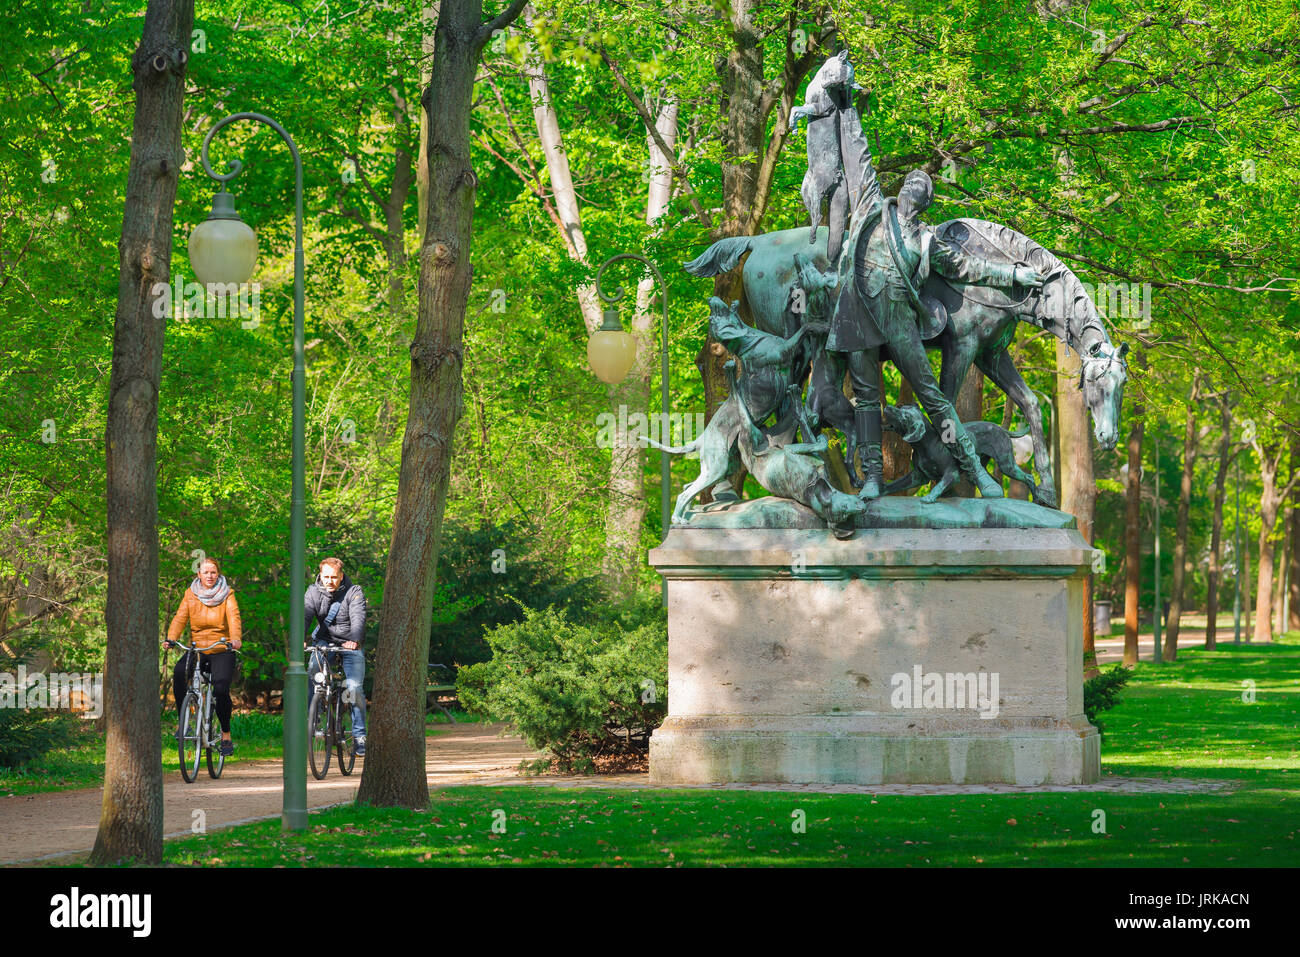 Berlin cycling park, cyclists in Berlin use the extensive cycle paths in the Tiergarten park, Germany. - Stock Image